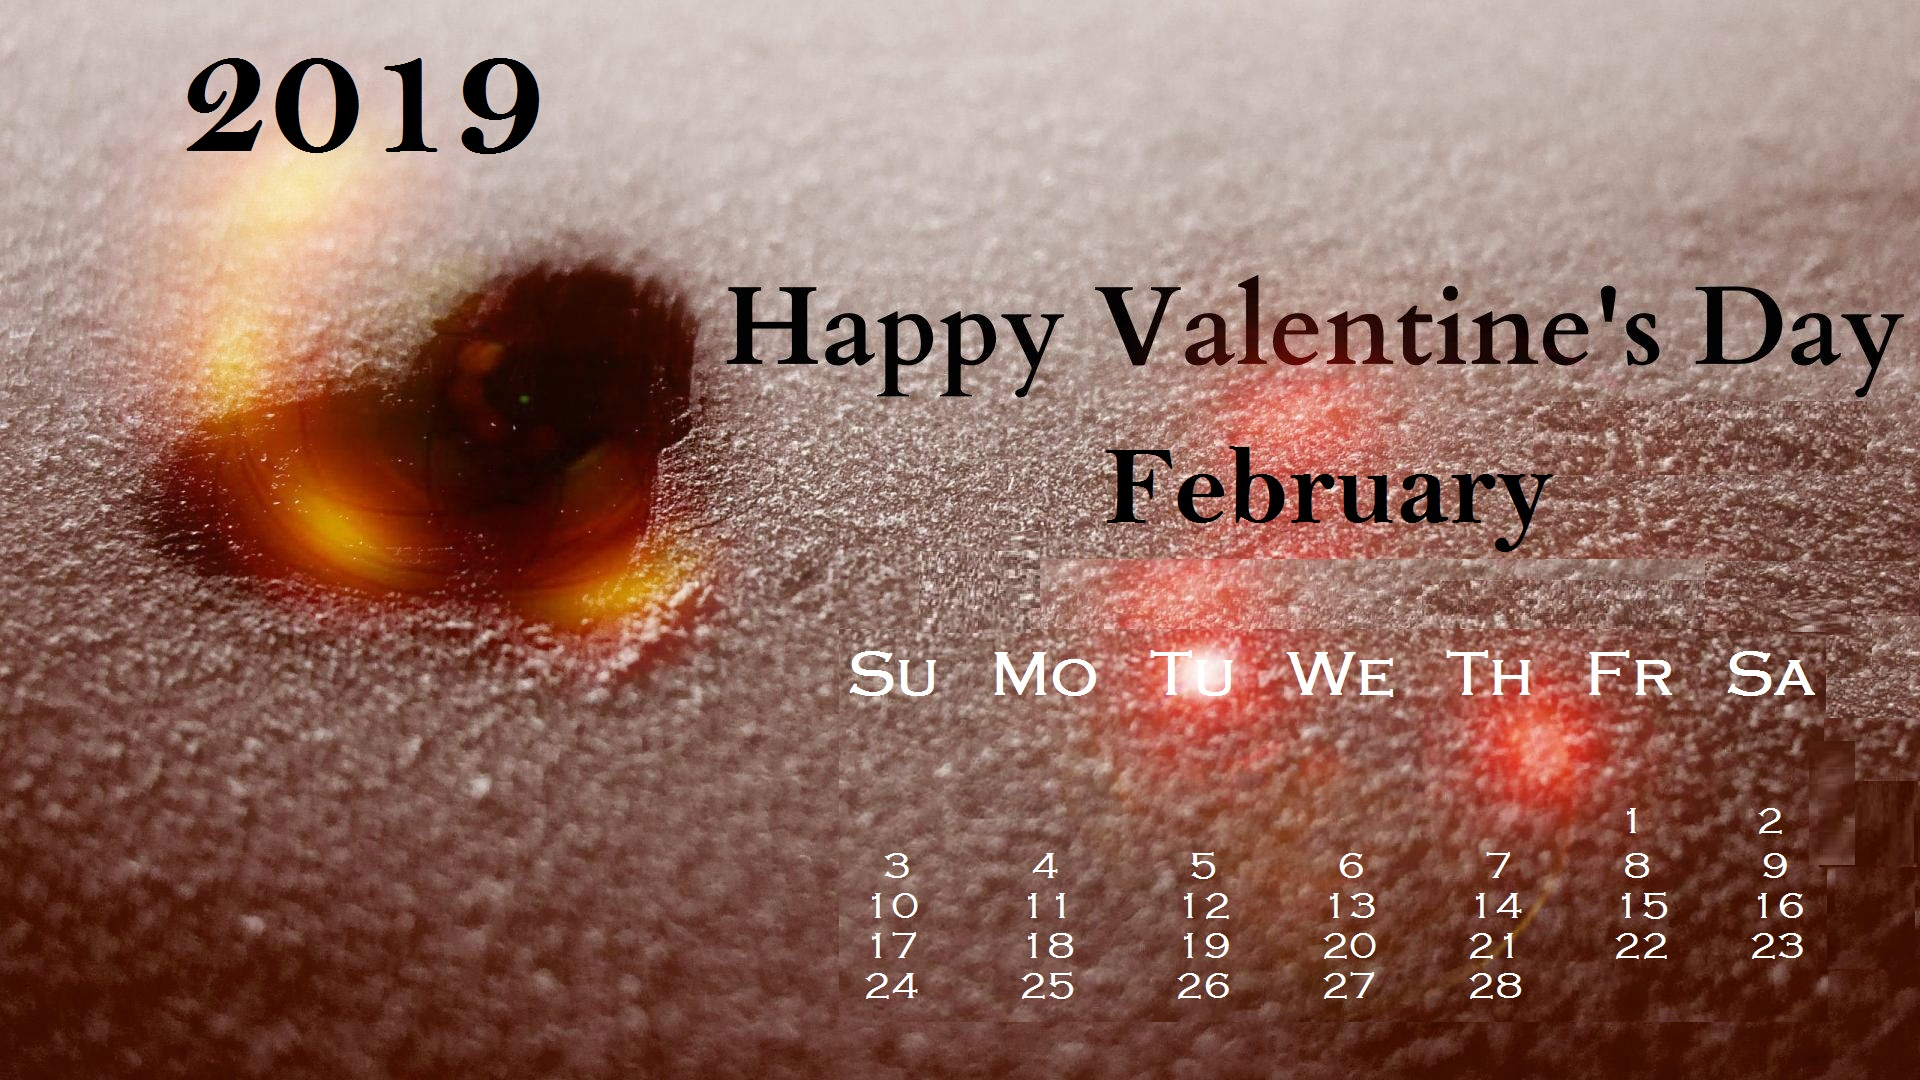 Valentines February 2019 Desktop Calendar Wallpaper